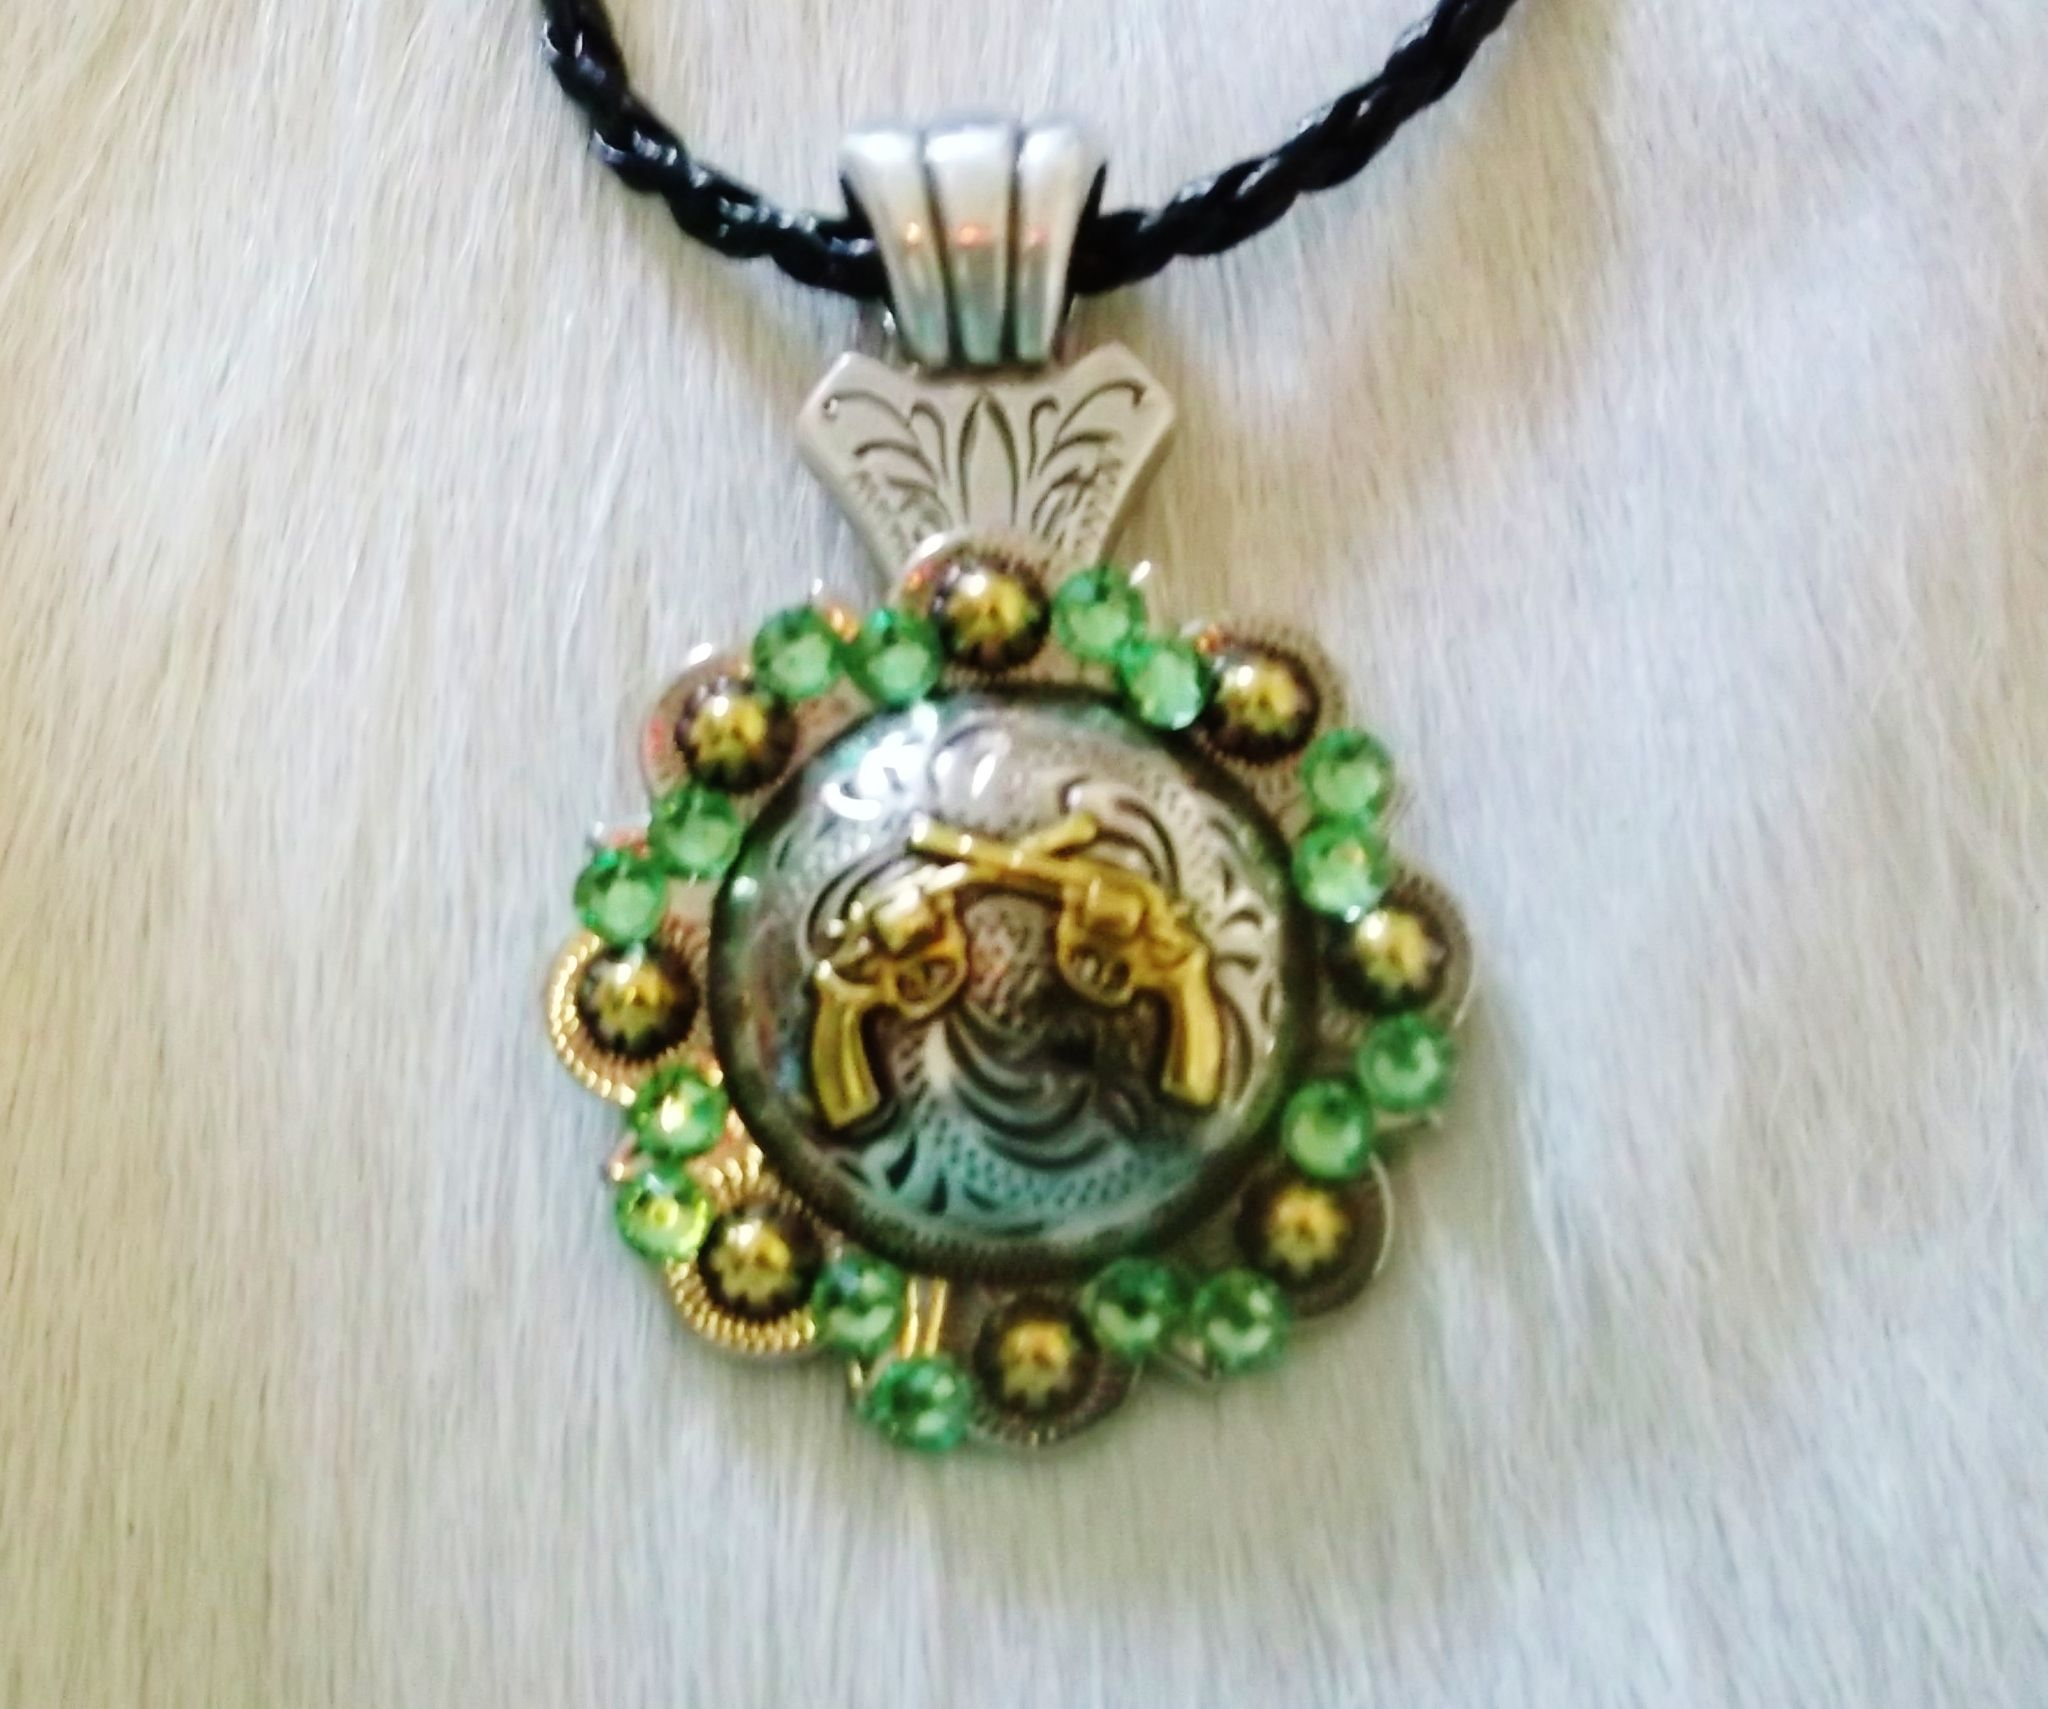 Pistol necklace accented with glass peridot green crystals. 17in cord with 2in chain extension.  www.pamperedcowgirl.com